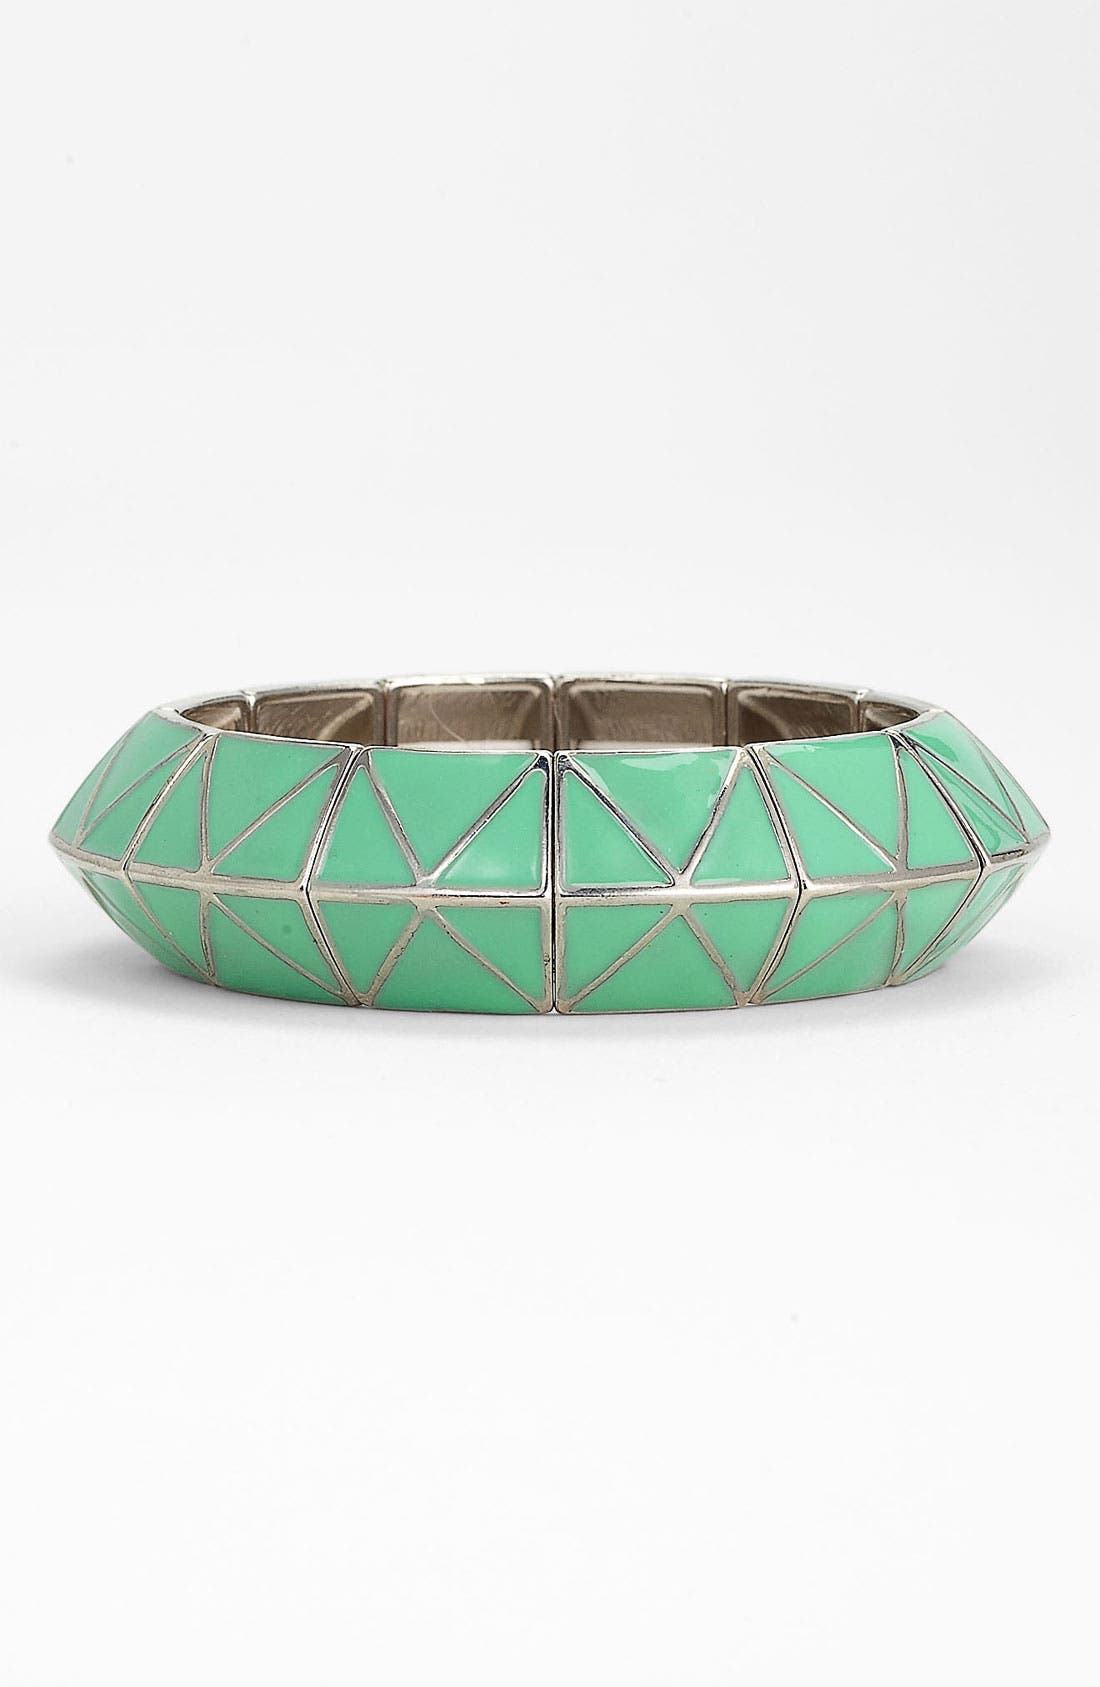 Alternate Image 1 Selected - Carole Enameled Pyramid Stretch Bracelet